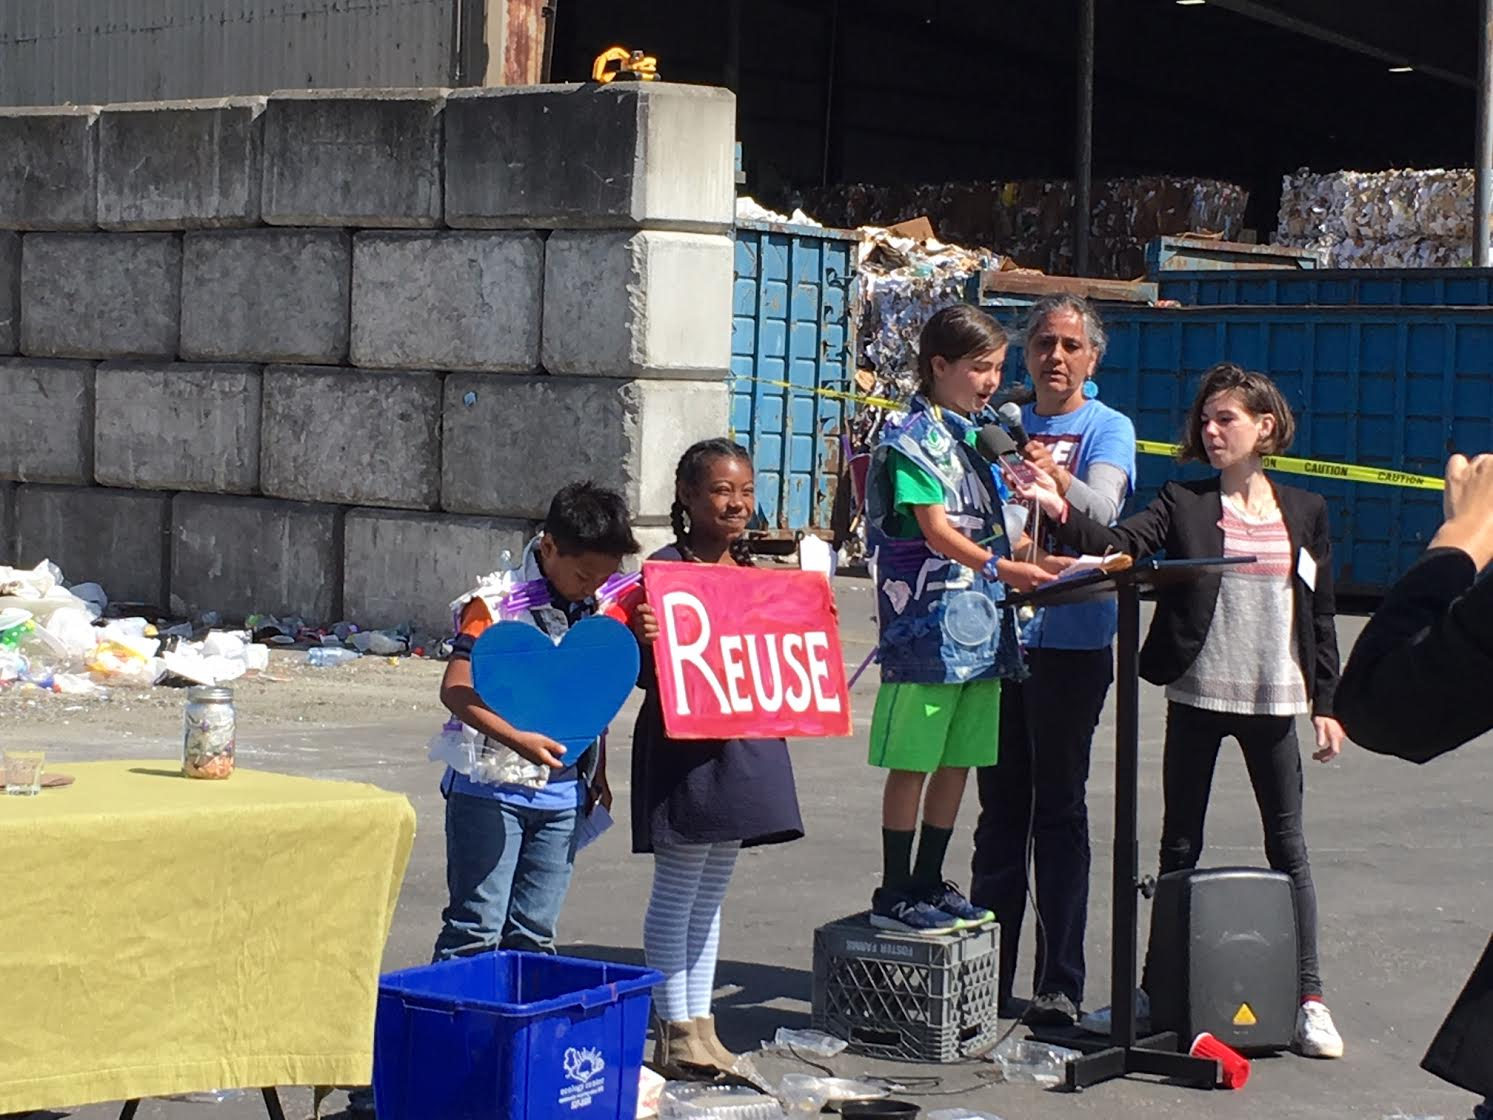 Teacher Jacqueline Omania with 3rd graders speaking at a press conferences in favor of the ordinance on April 24.